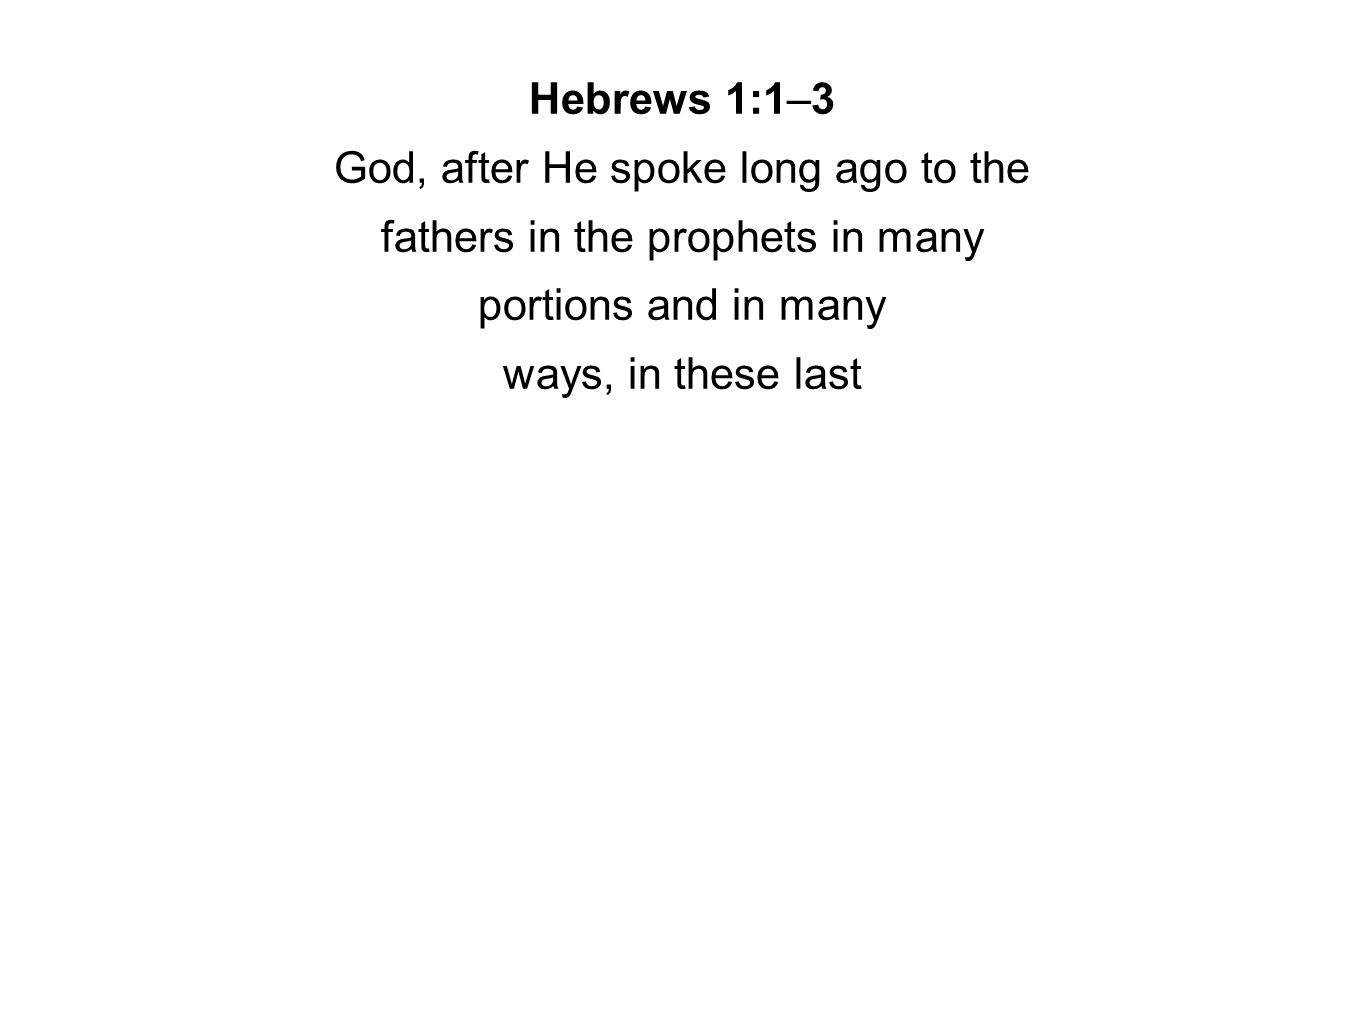 Hebrews 1:1–3 God, after He spoke long ago to the fathers in the prophets in many portions and in many ways, in these last